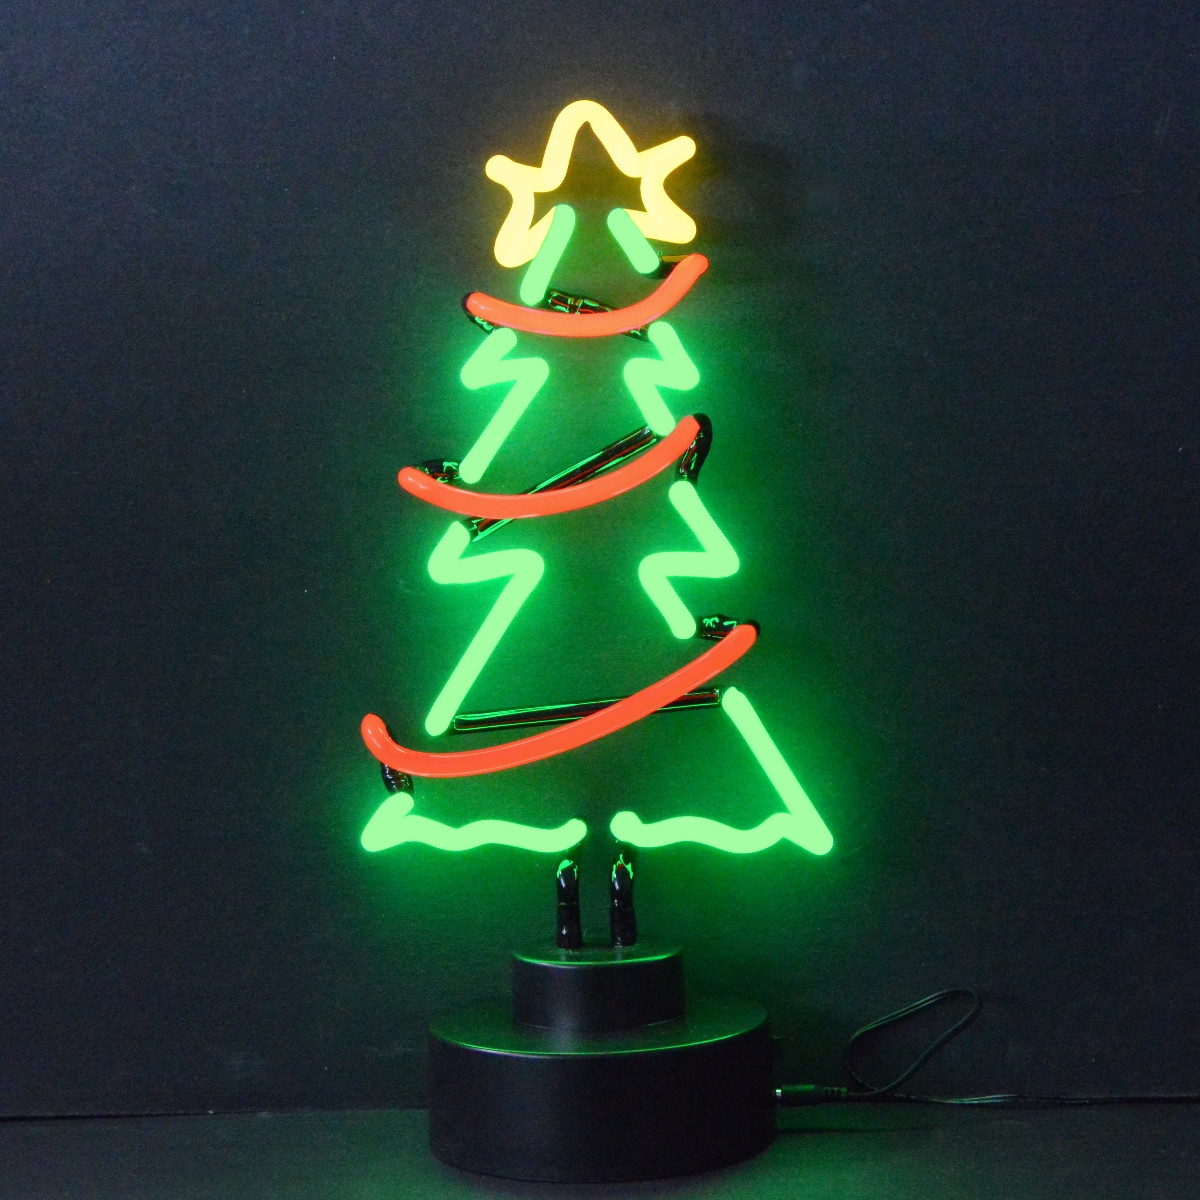 CHRISTMAS TREE WITH GARLAND NEON SCULPTURE - Neon4Less.com